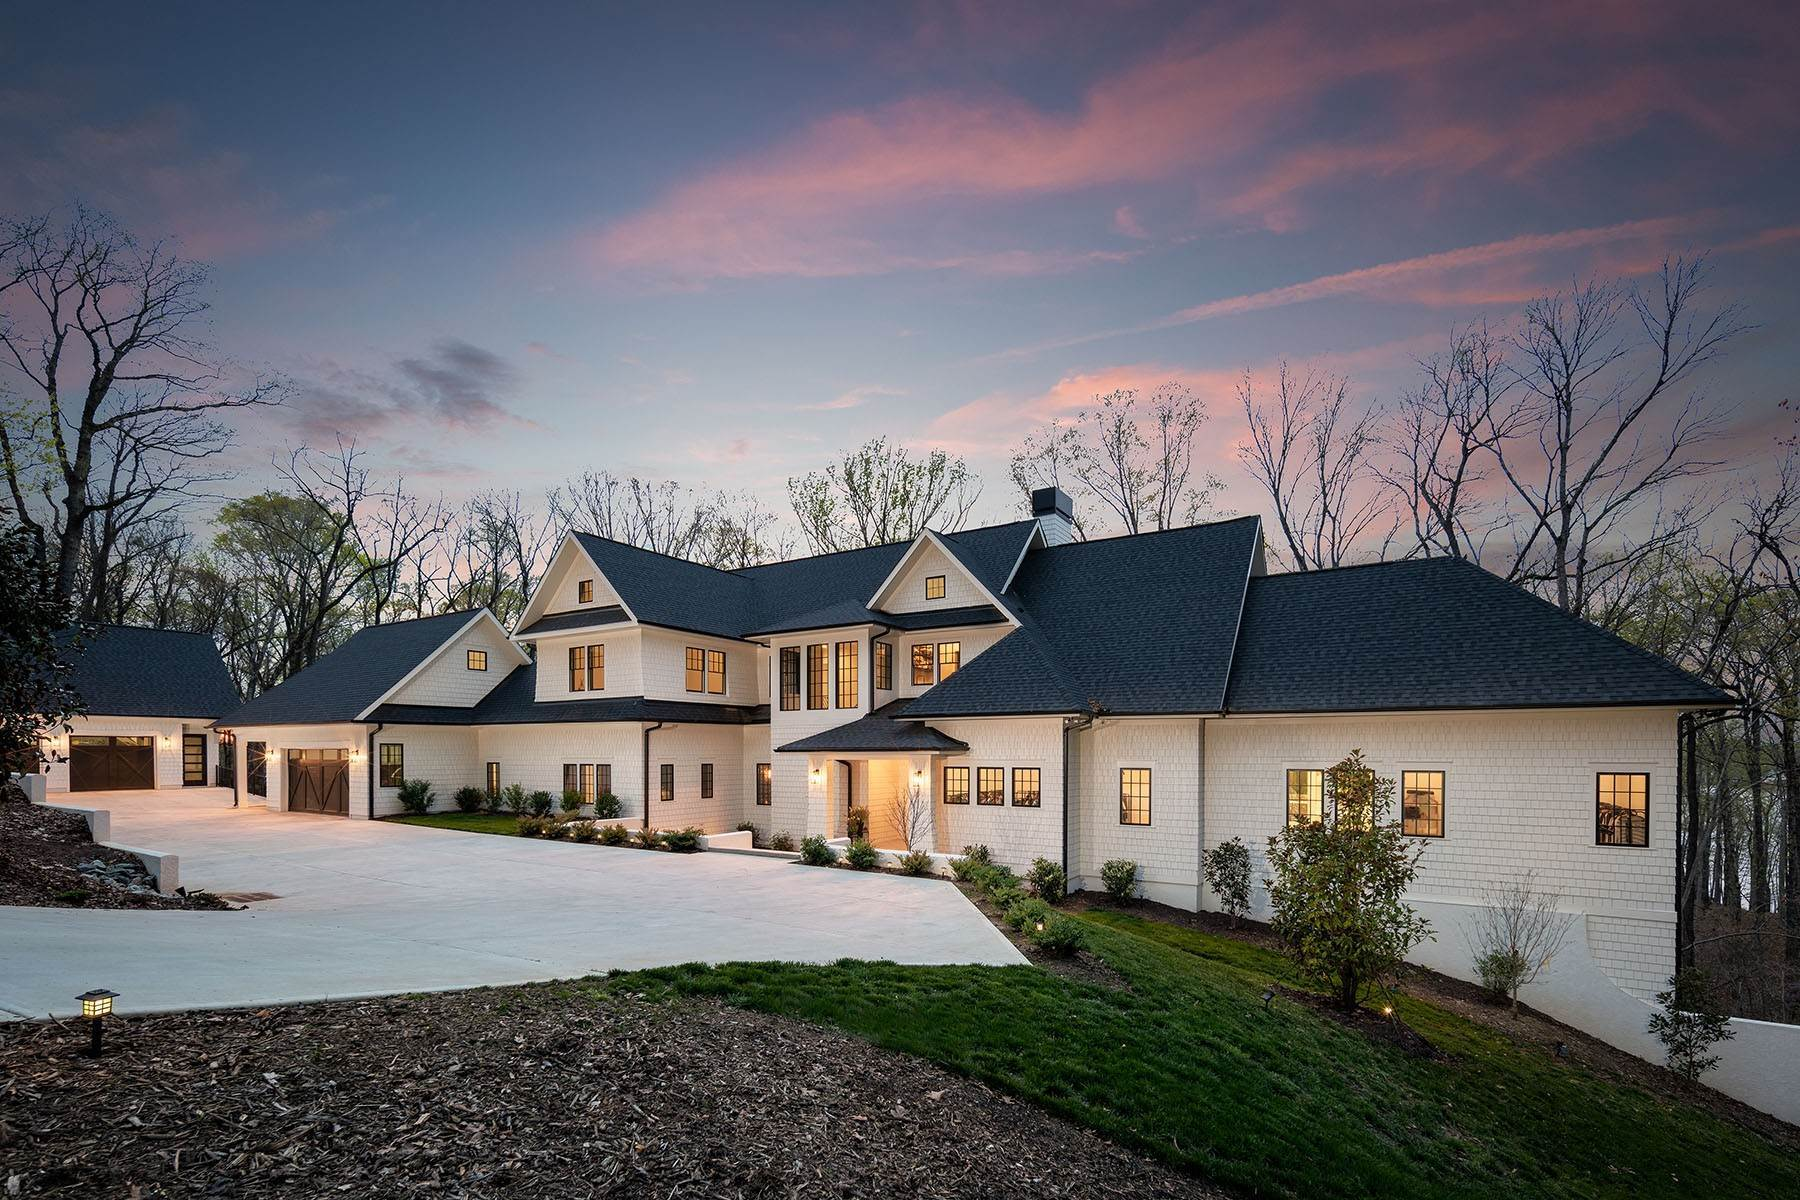 Single Family Homes for Active at THE SANCTUARY 13702 Sage Thrasher Lane Charlotte, North Carolina 28278 United States